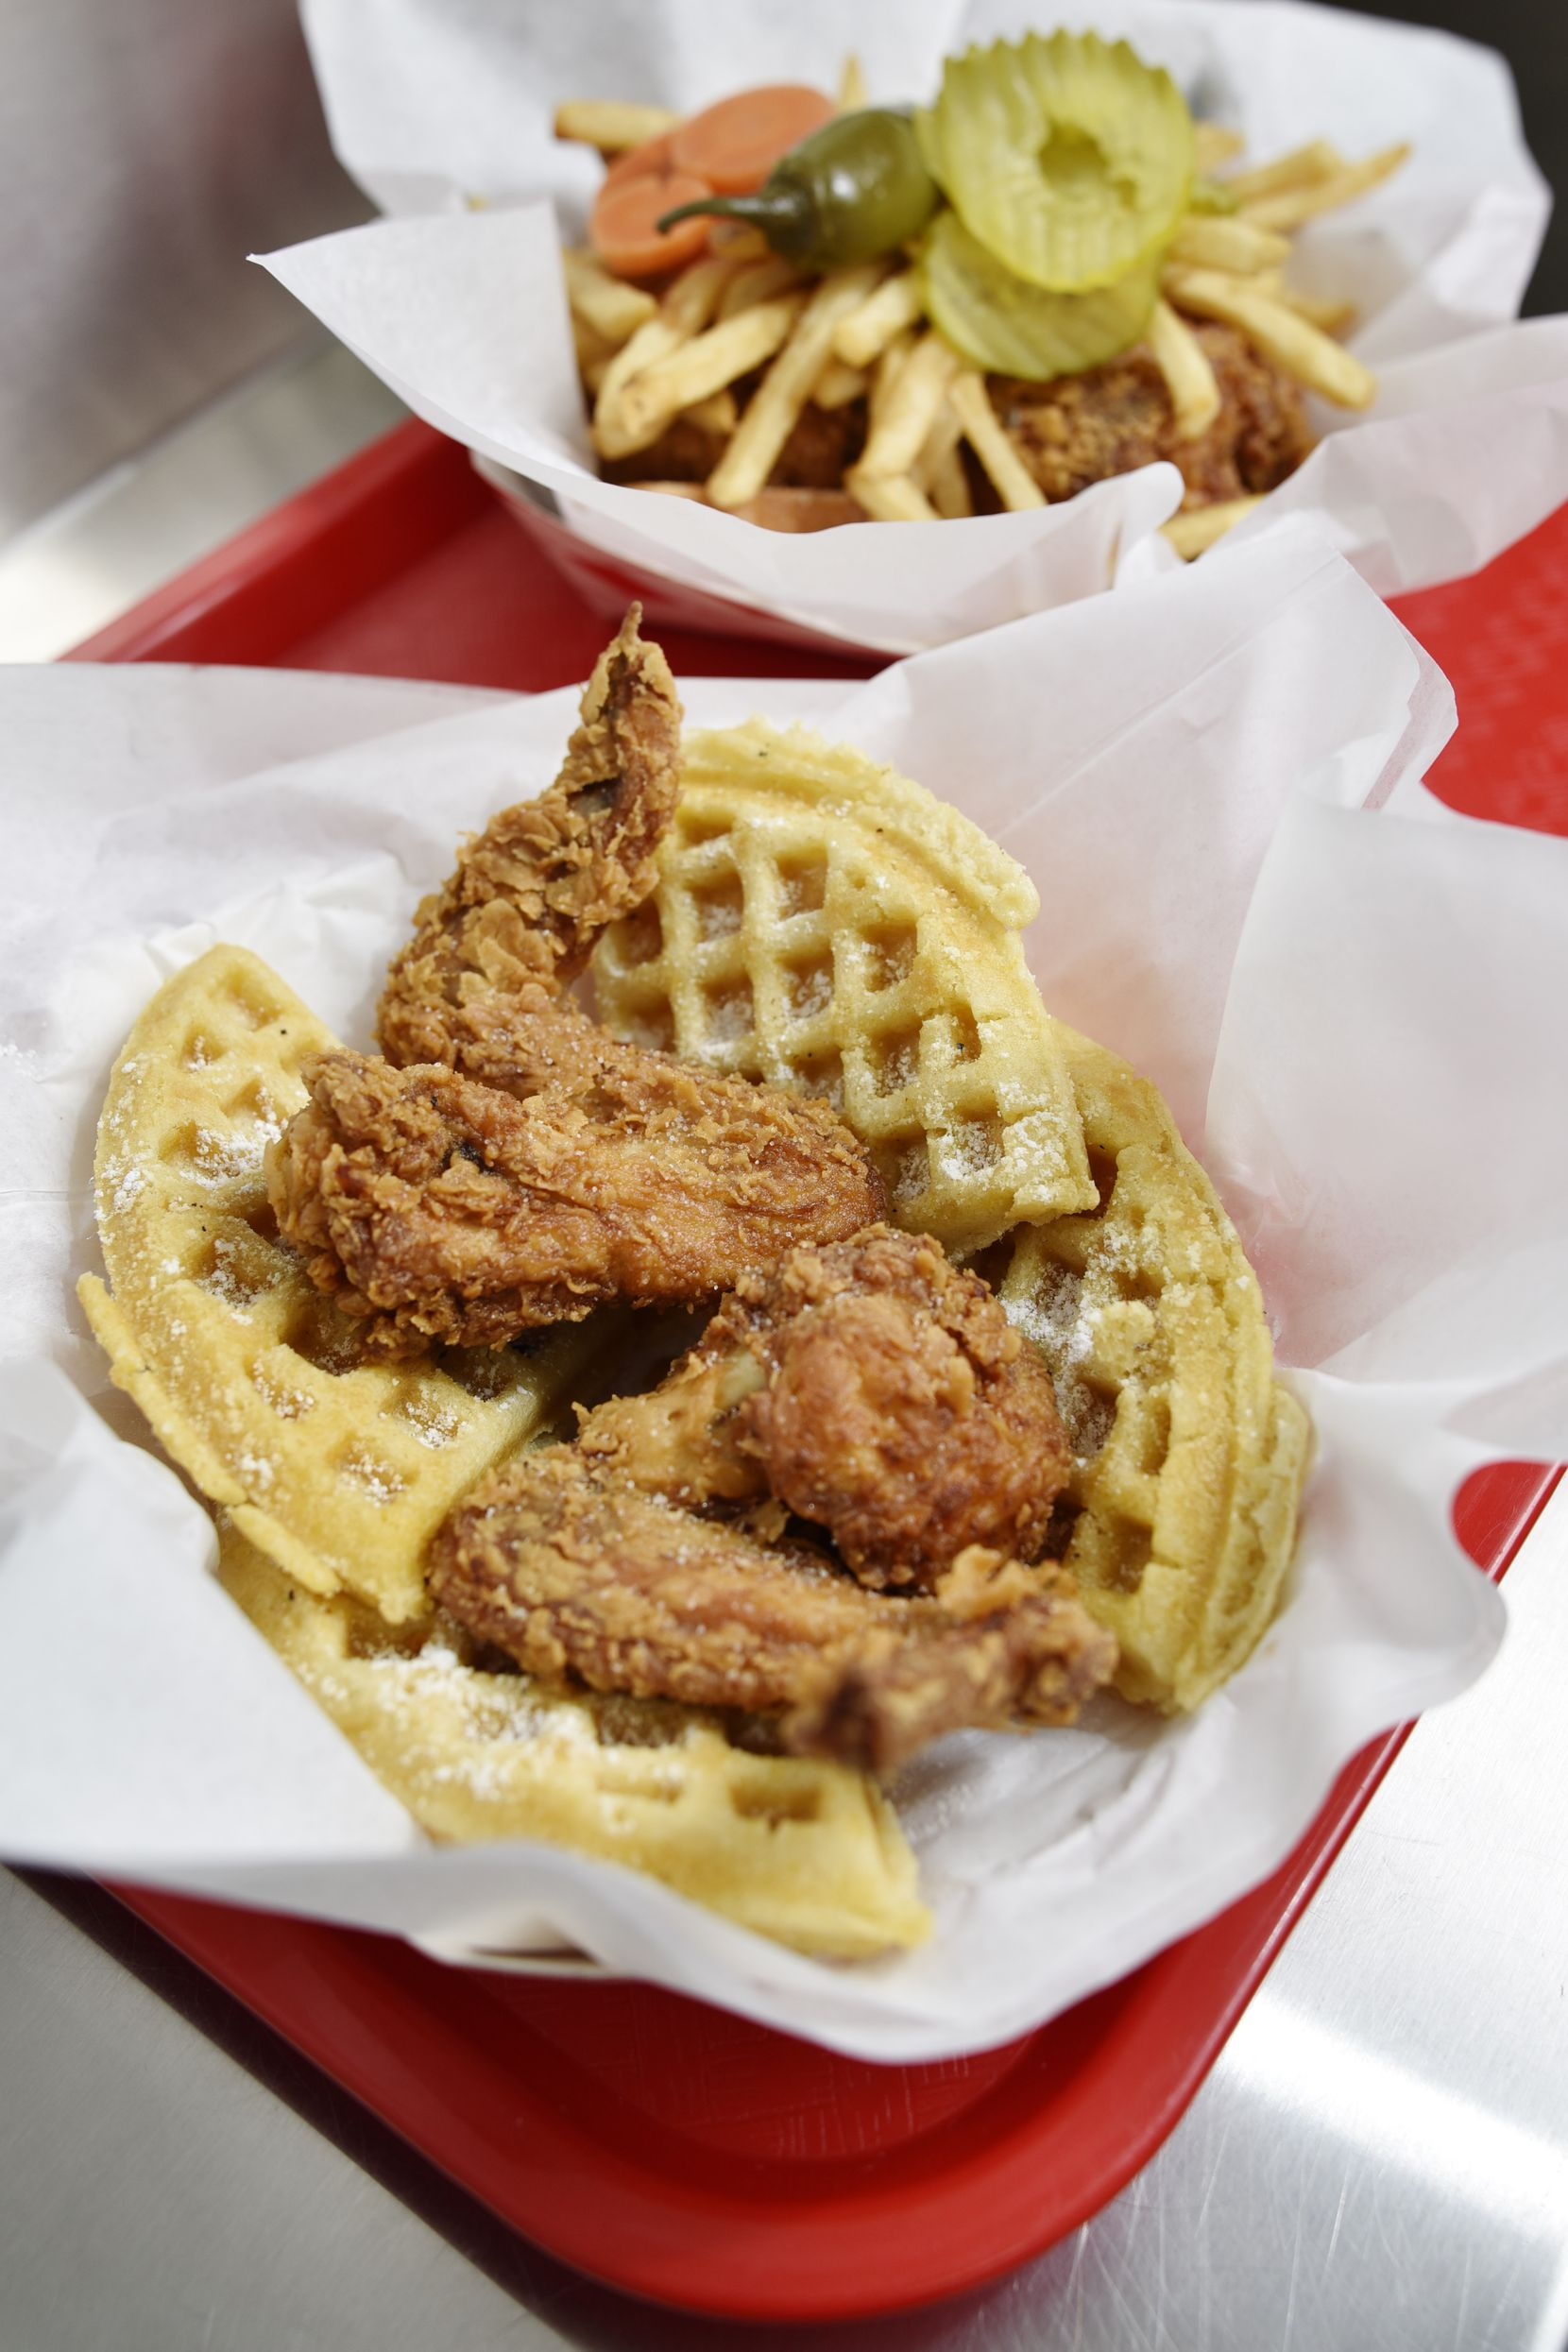 Hall's Honey Fried Chicken offers baskets of two-piece chicken and waffles and two-piece chicken served with fries, pickles and two pieces of white bread.